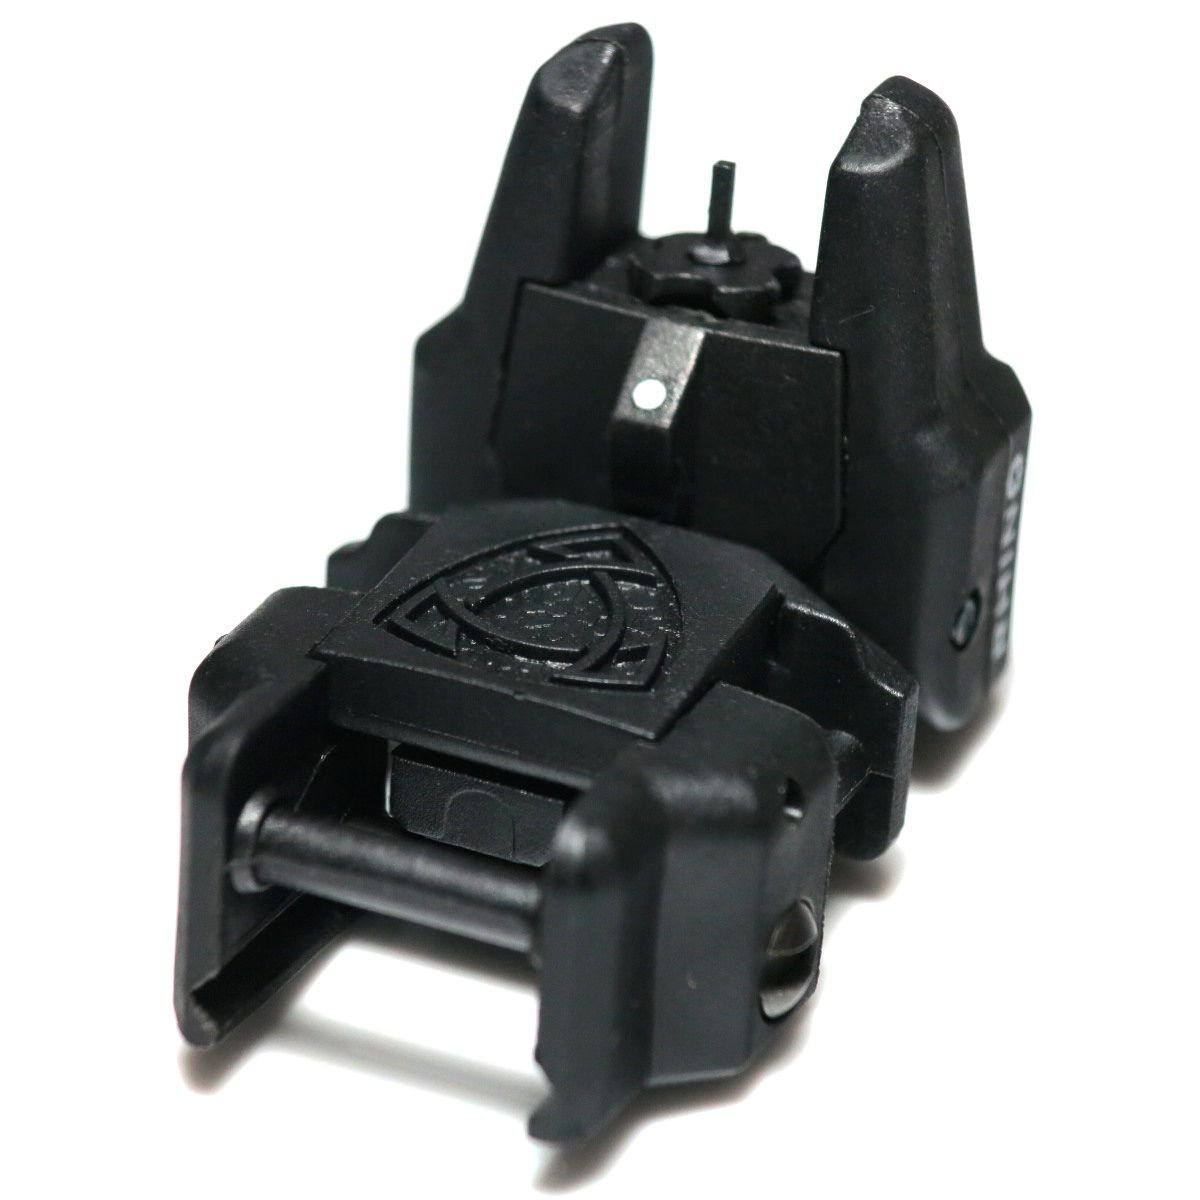 Airsoft Wargame Tactical Shooting Gear APS GG038B Rhino Auxiliary Flip Up Front Sight Black